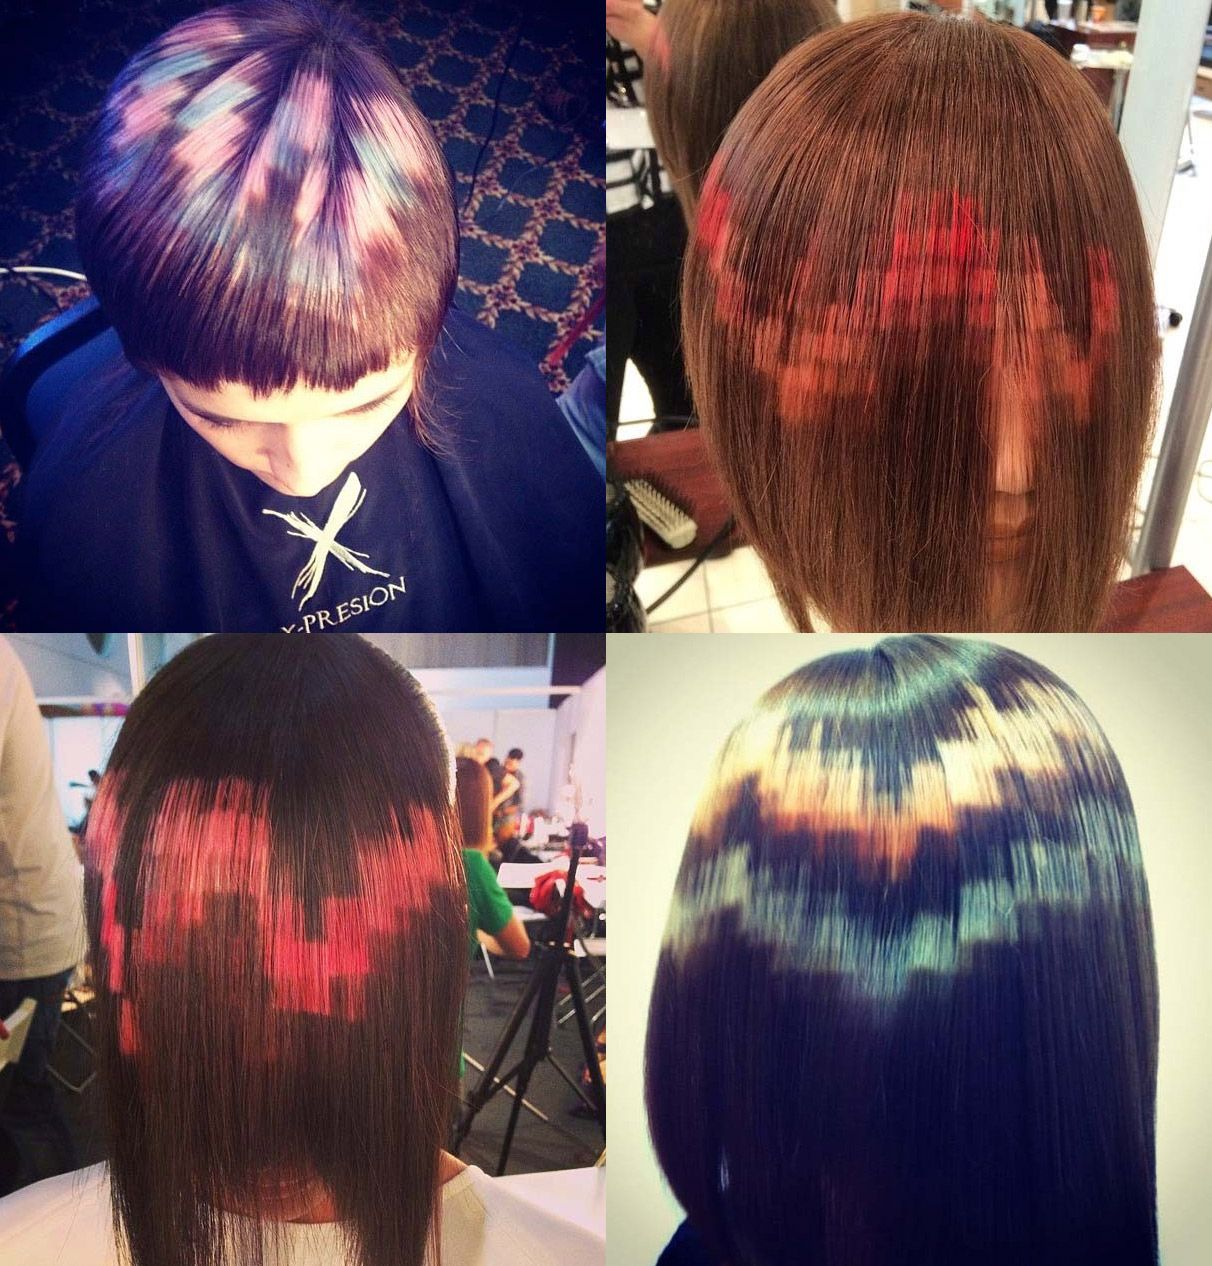 Art color hair - Hair That Looks Like Pixel Art From The Creative Group X Presion